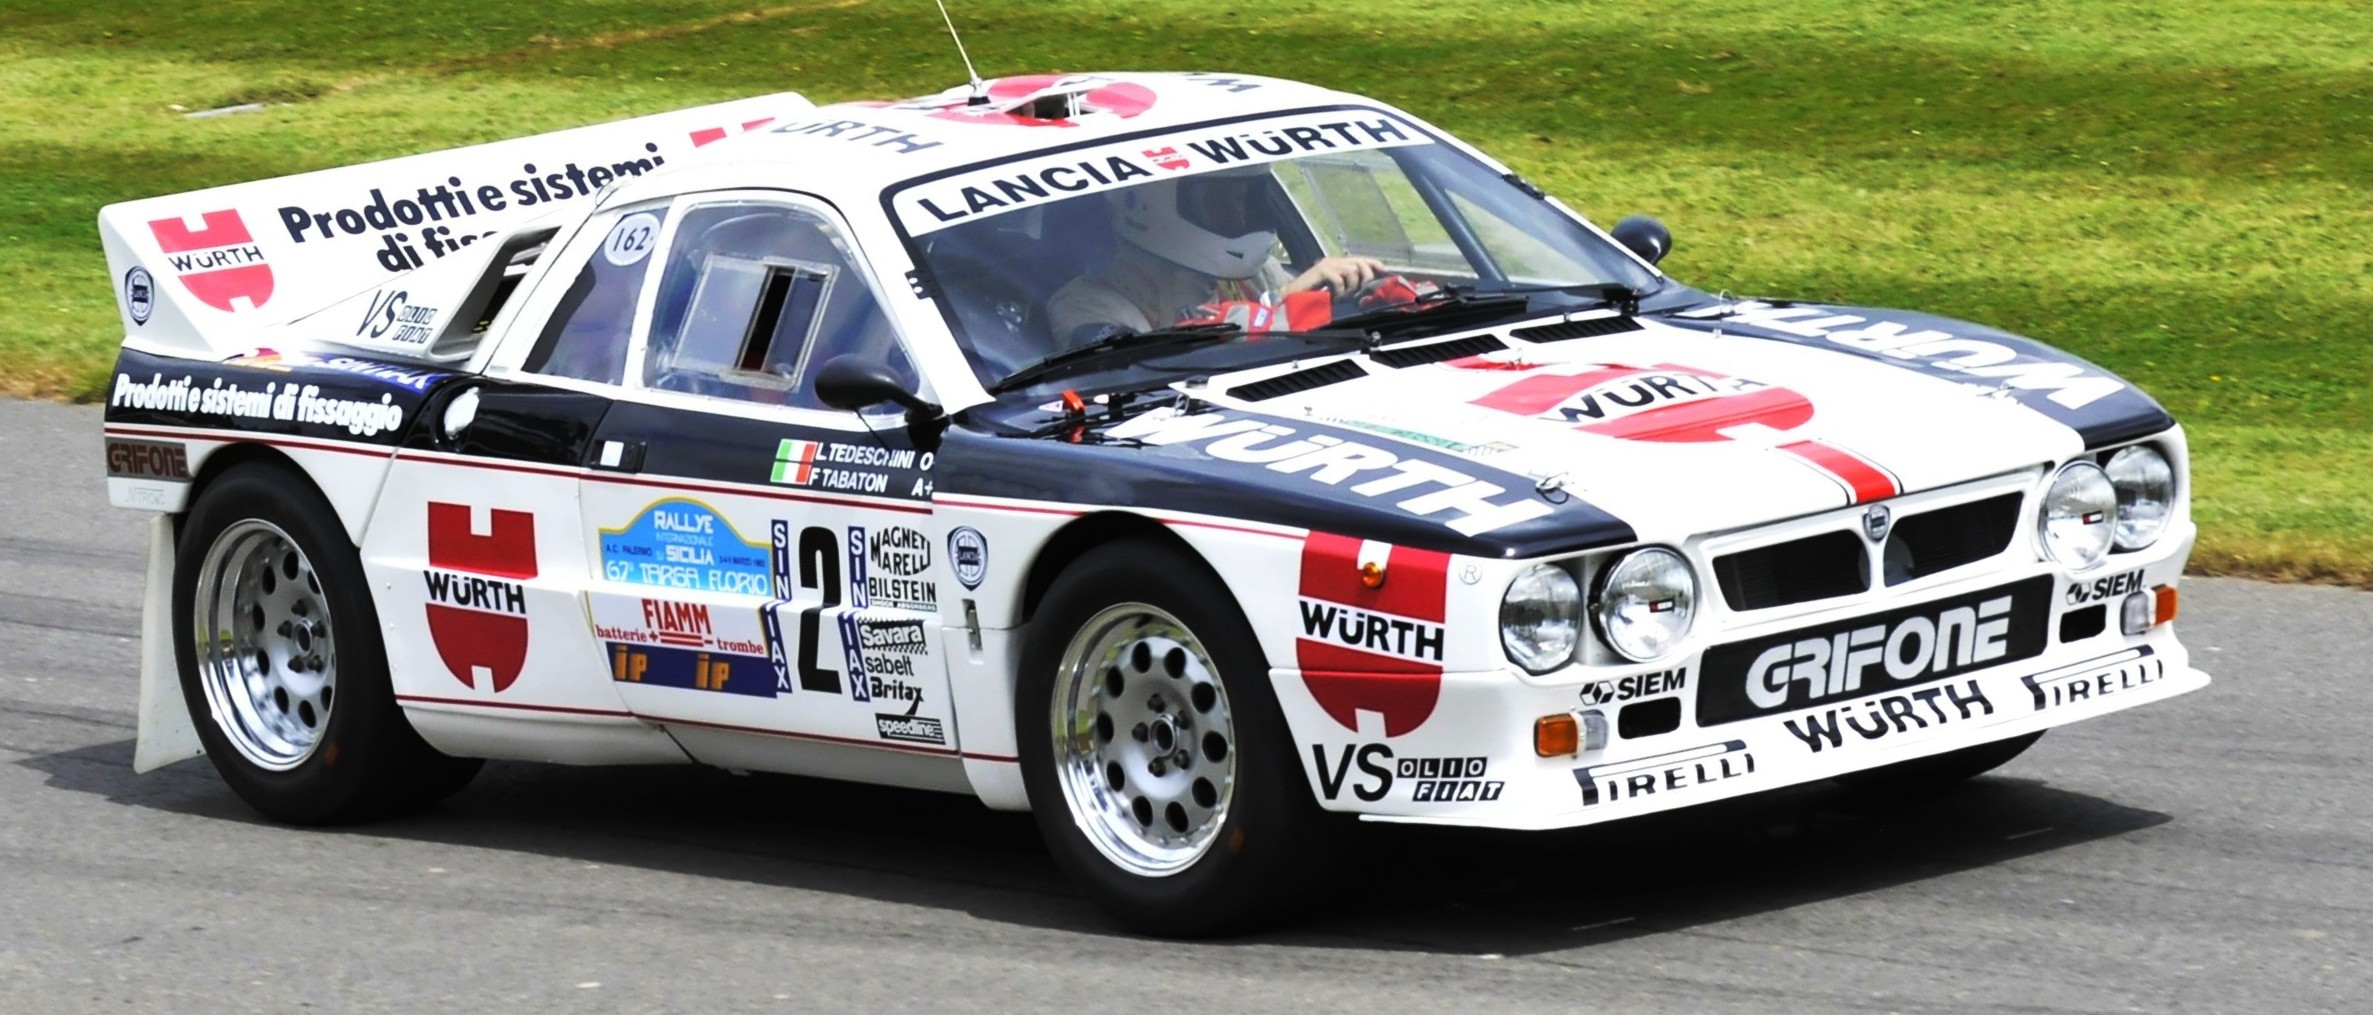 1983 Lancia Beta Montecarlo And 1982 037 At Goodwood 2014 Legend Car Wiring Diagram